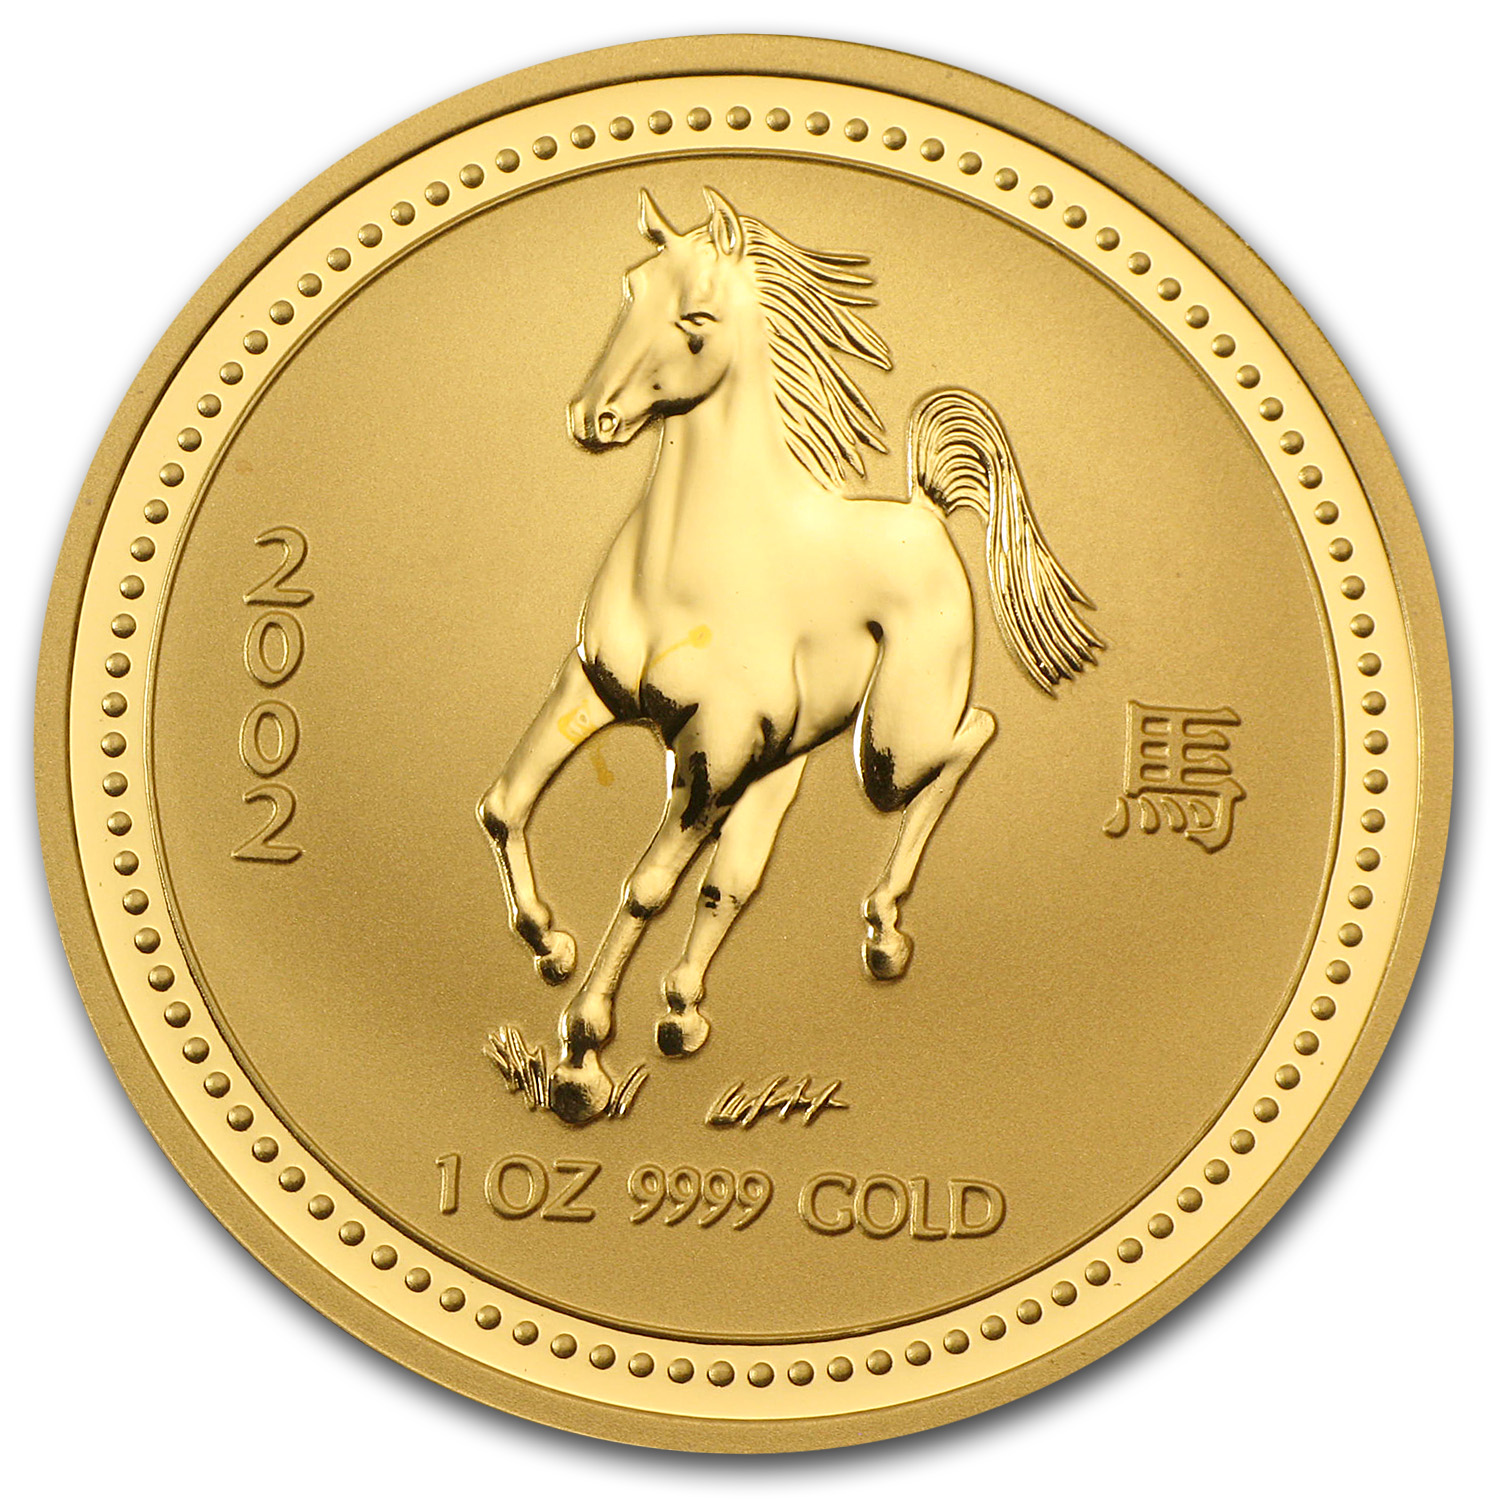 2002 1 oz Gold Year of the Horse Lunar Coin (Series I)